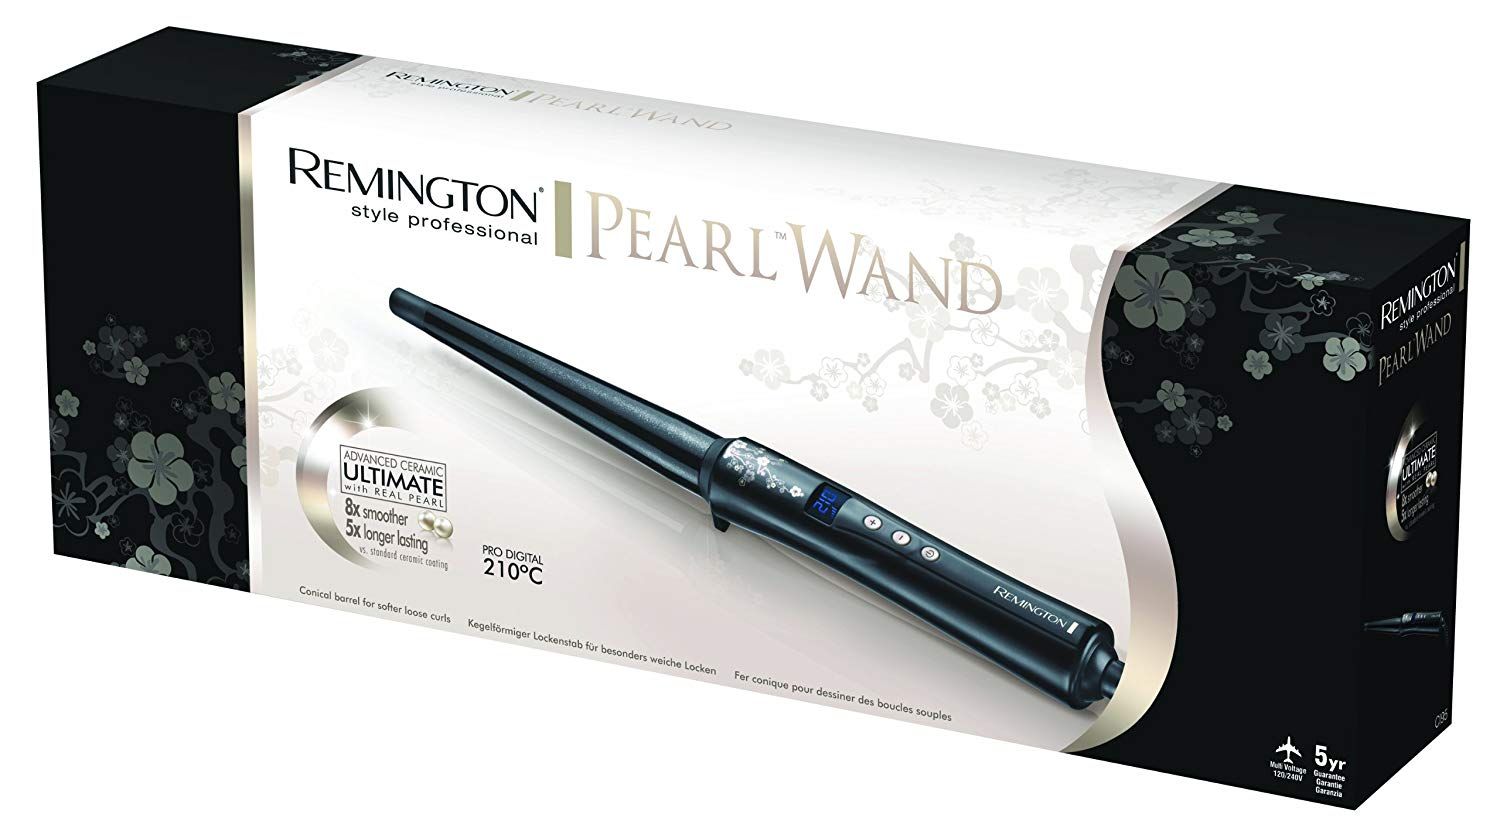 remington conique pearl